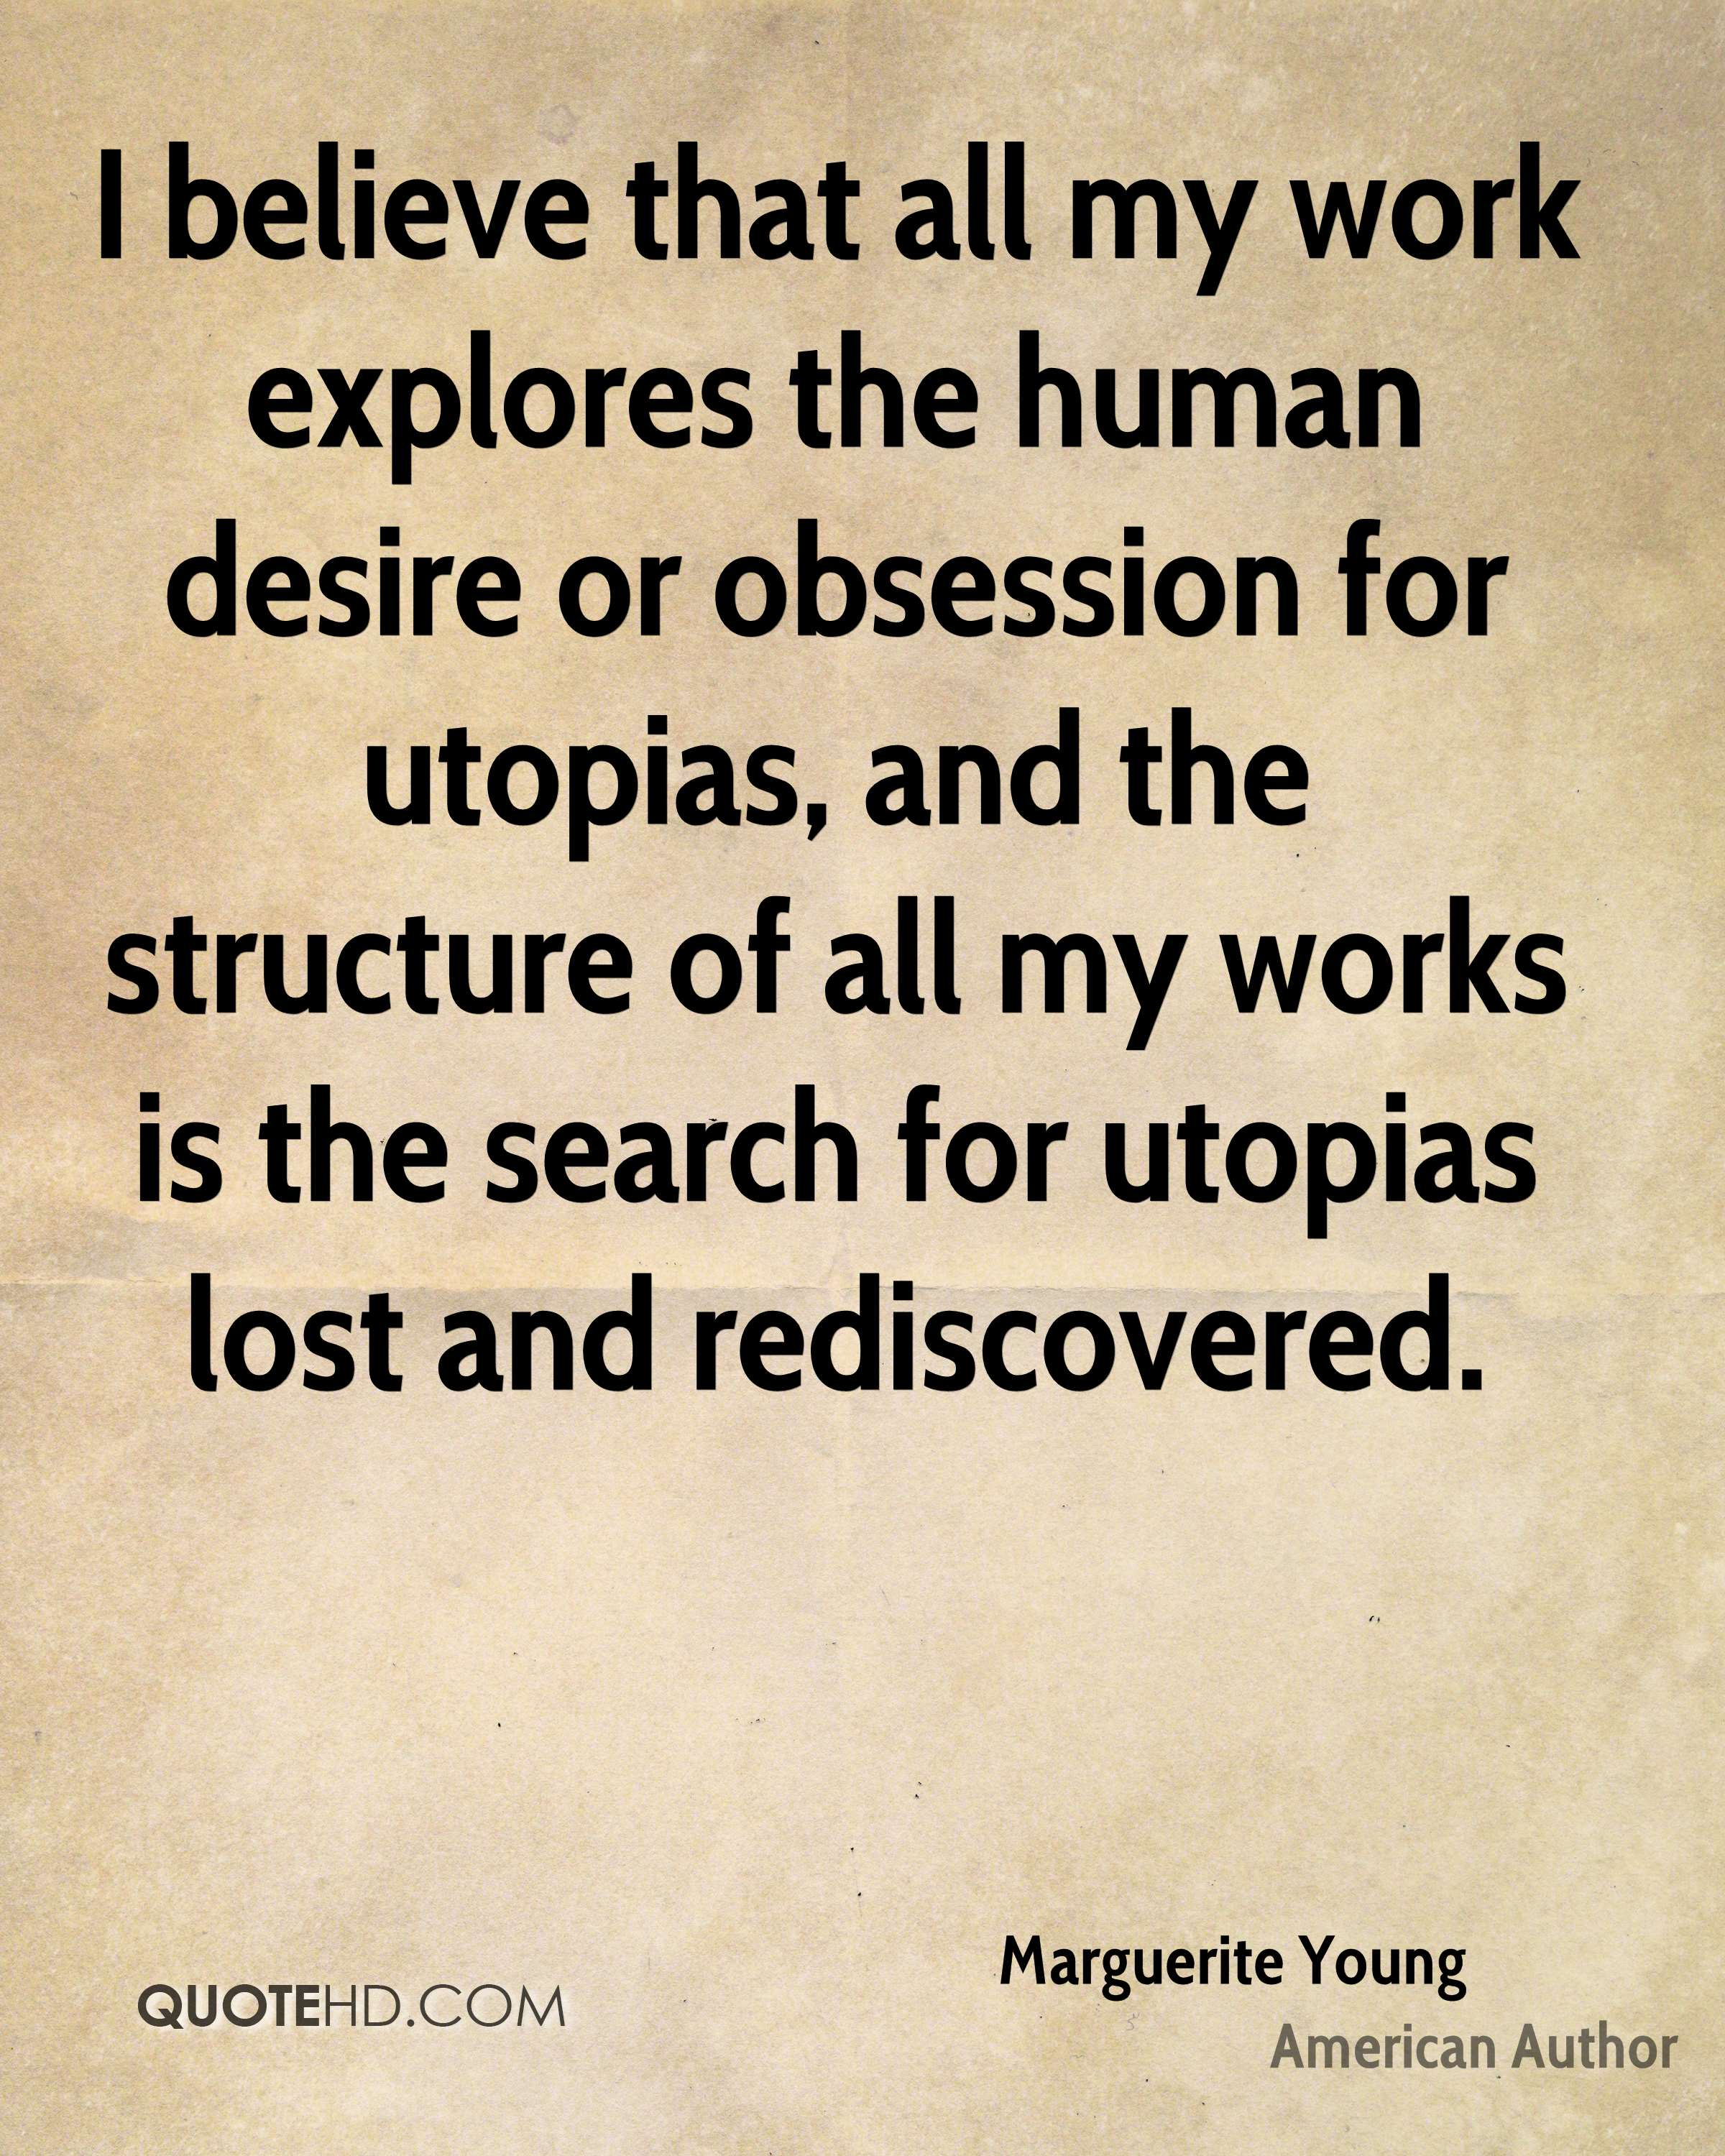 I believe that all my work explores the human desire or obsession for utopias, and the structure of all my works is the search for utopias lost and rediscovered.